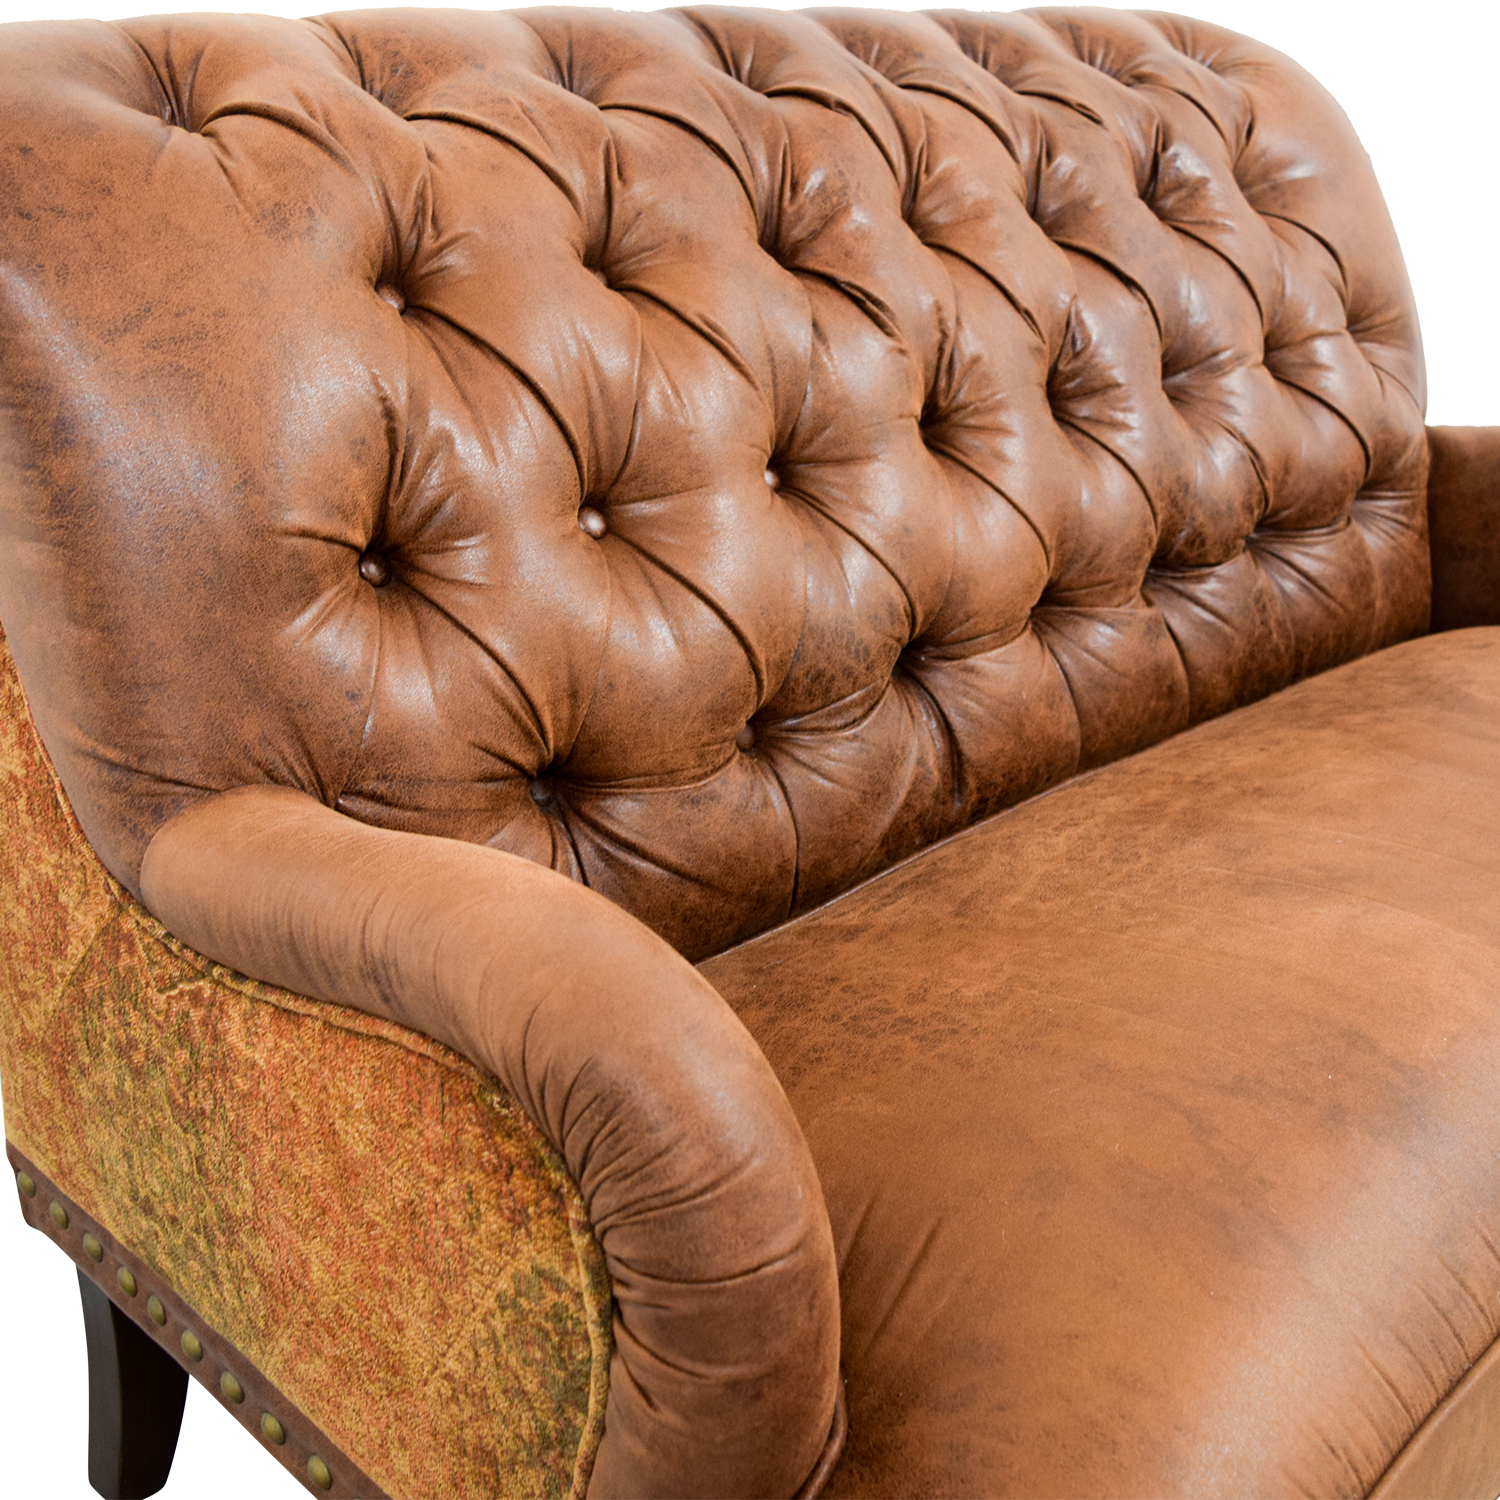 Surprising 36 Off Pier 1 Pier 1 Imports Faux Vintage Tufted Brown Leather Sofa Sofas Ncnpc Chair Design For Home Ncnpcorg